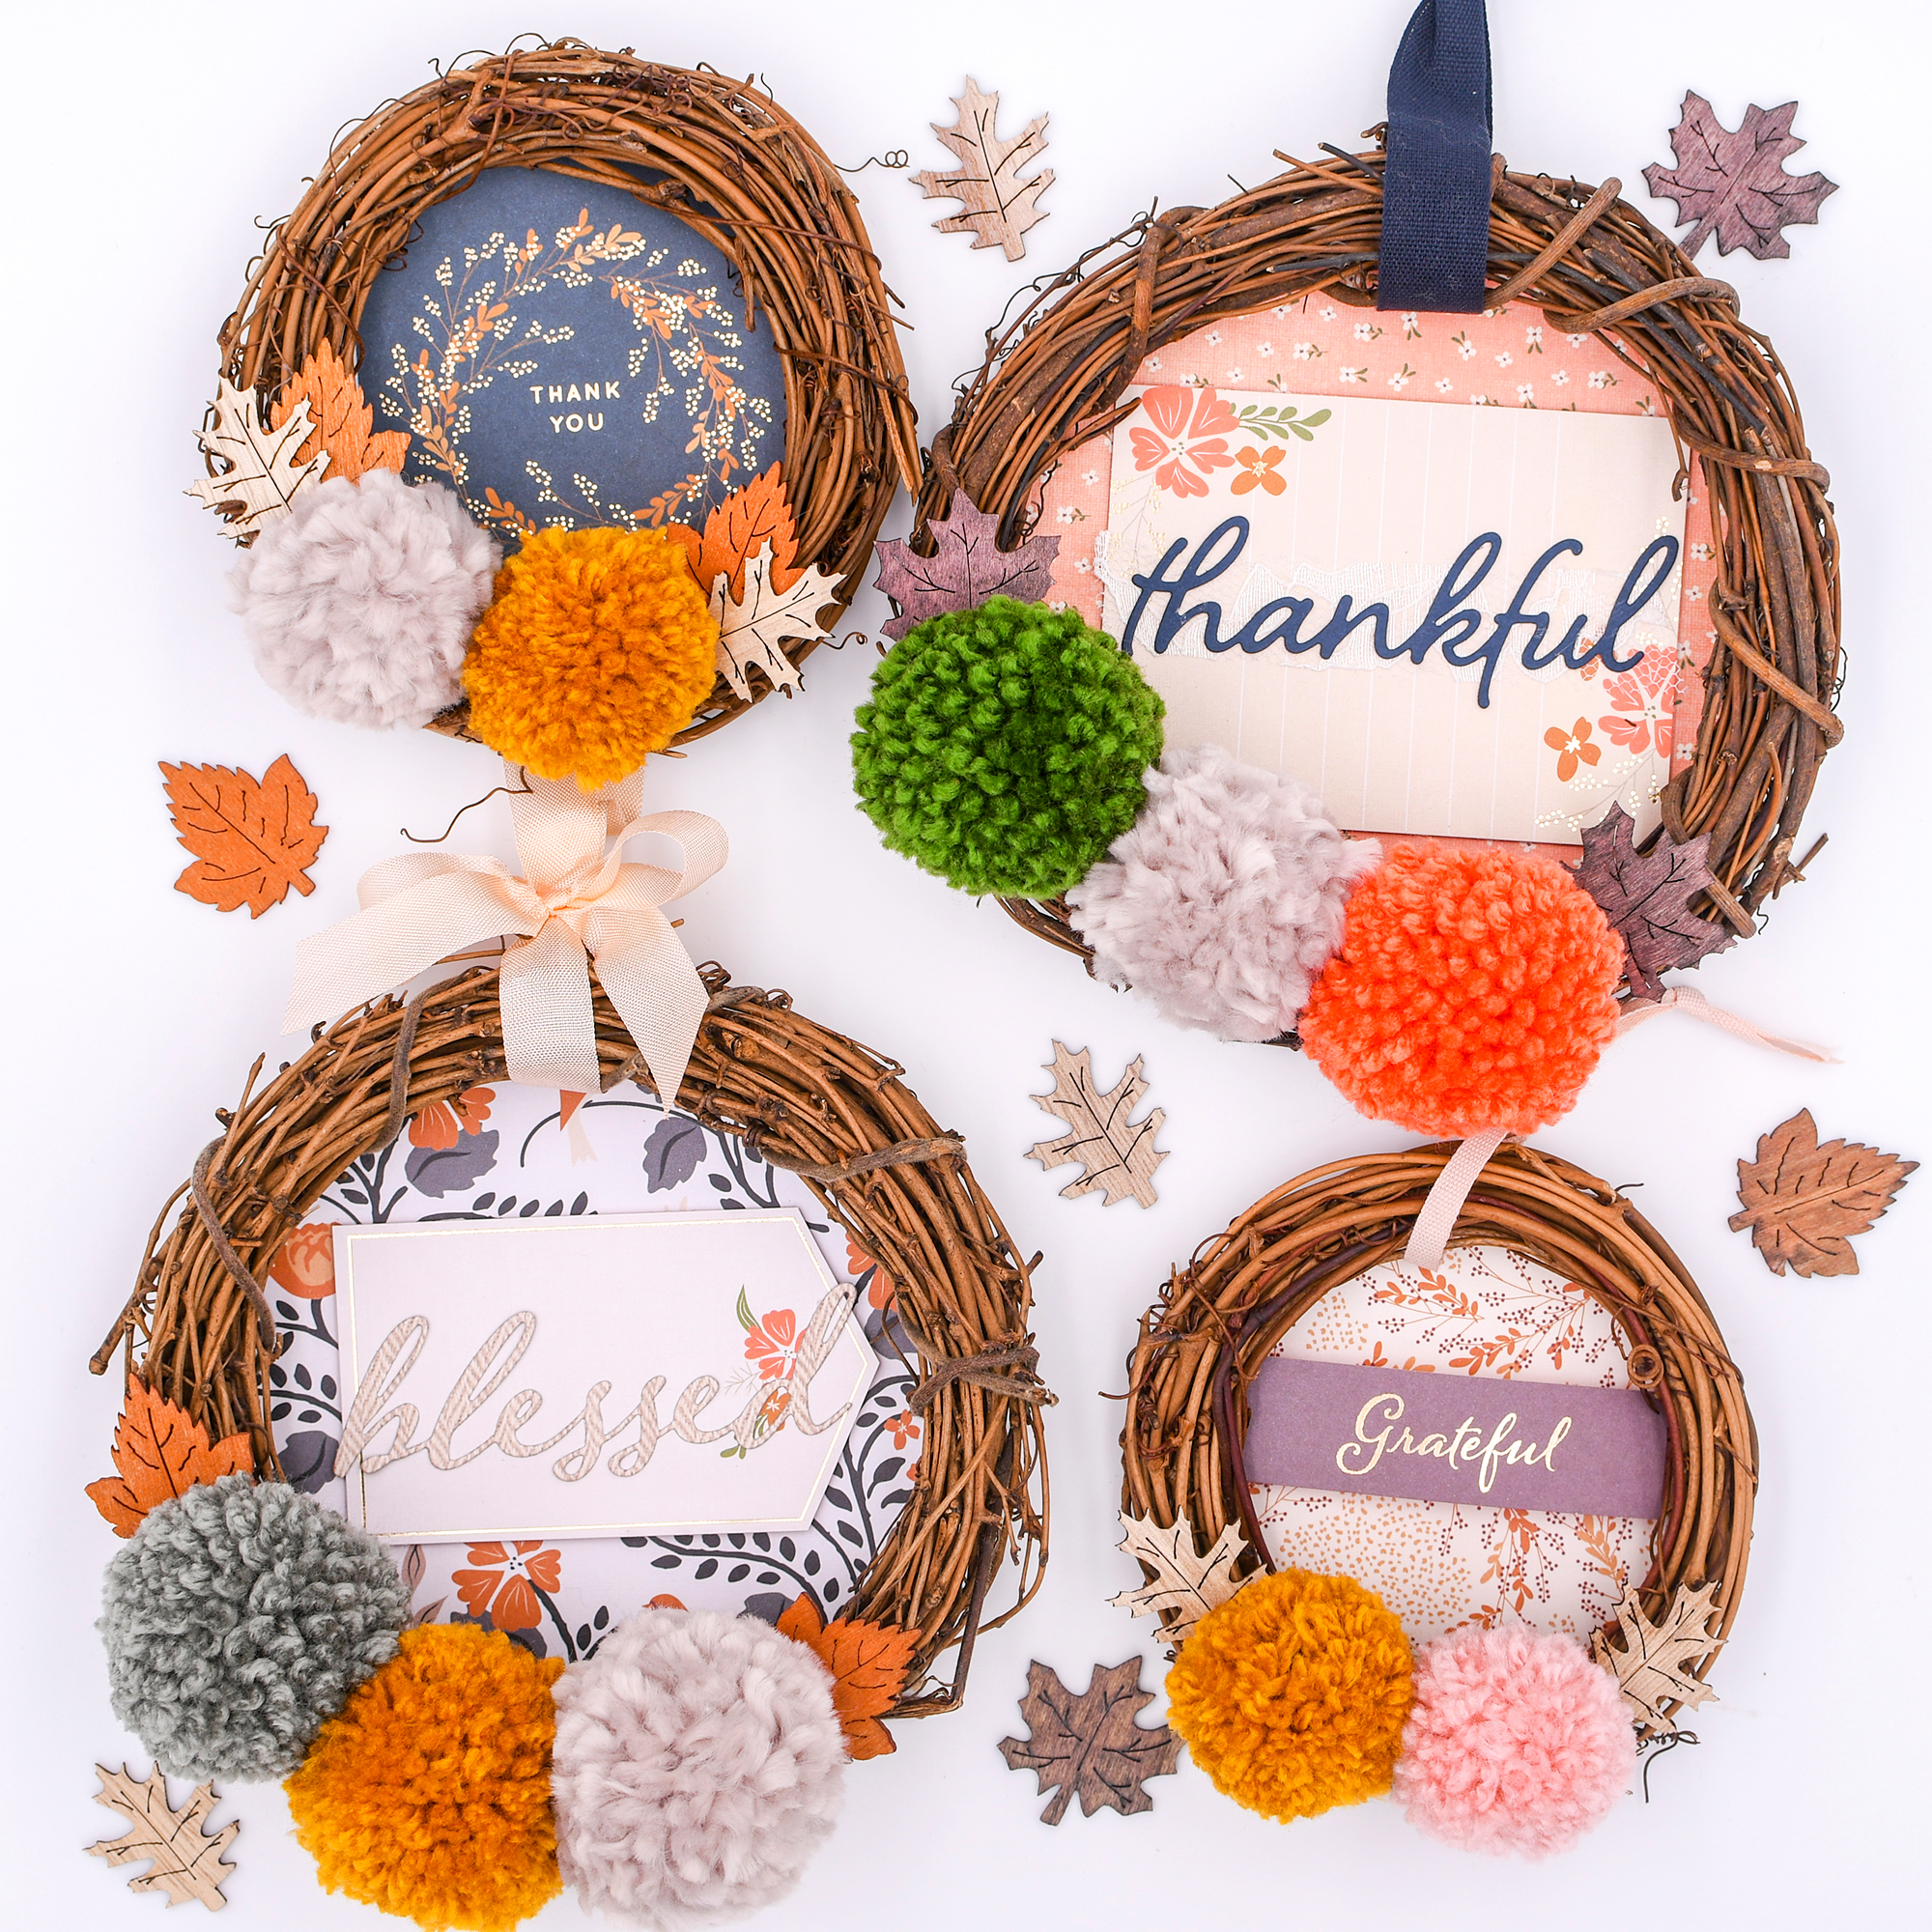 Mini Grapevine Pom Pom Wreaths for Thanksgiving by Rebecca Lumiarias for We R Memory Keepers